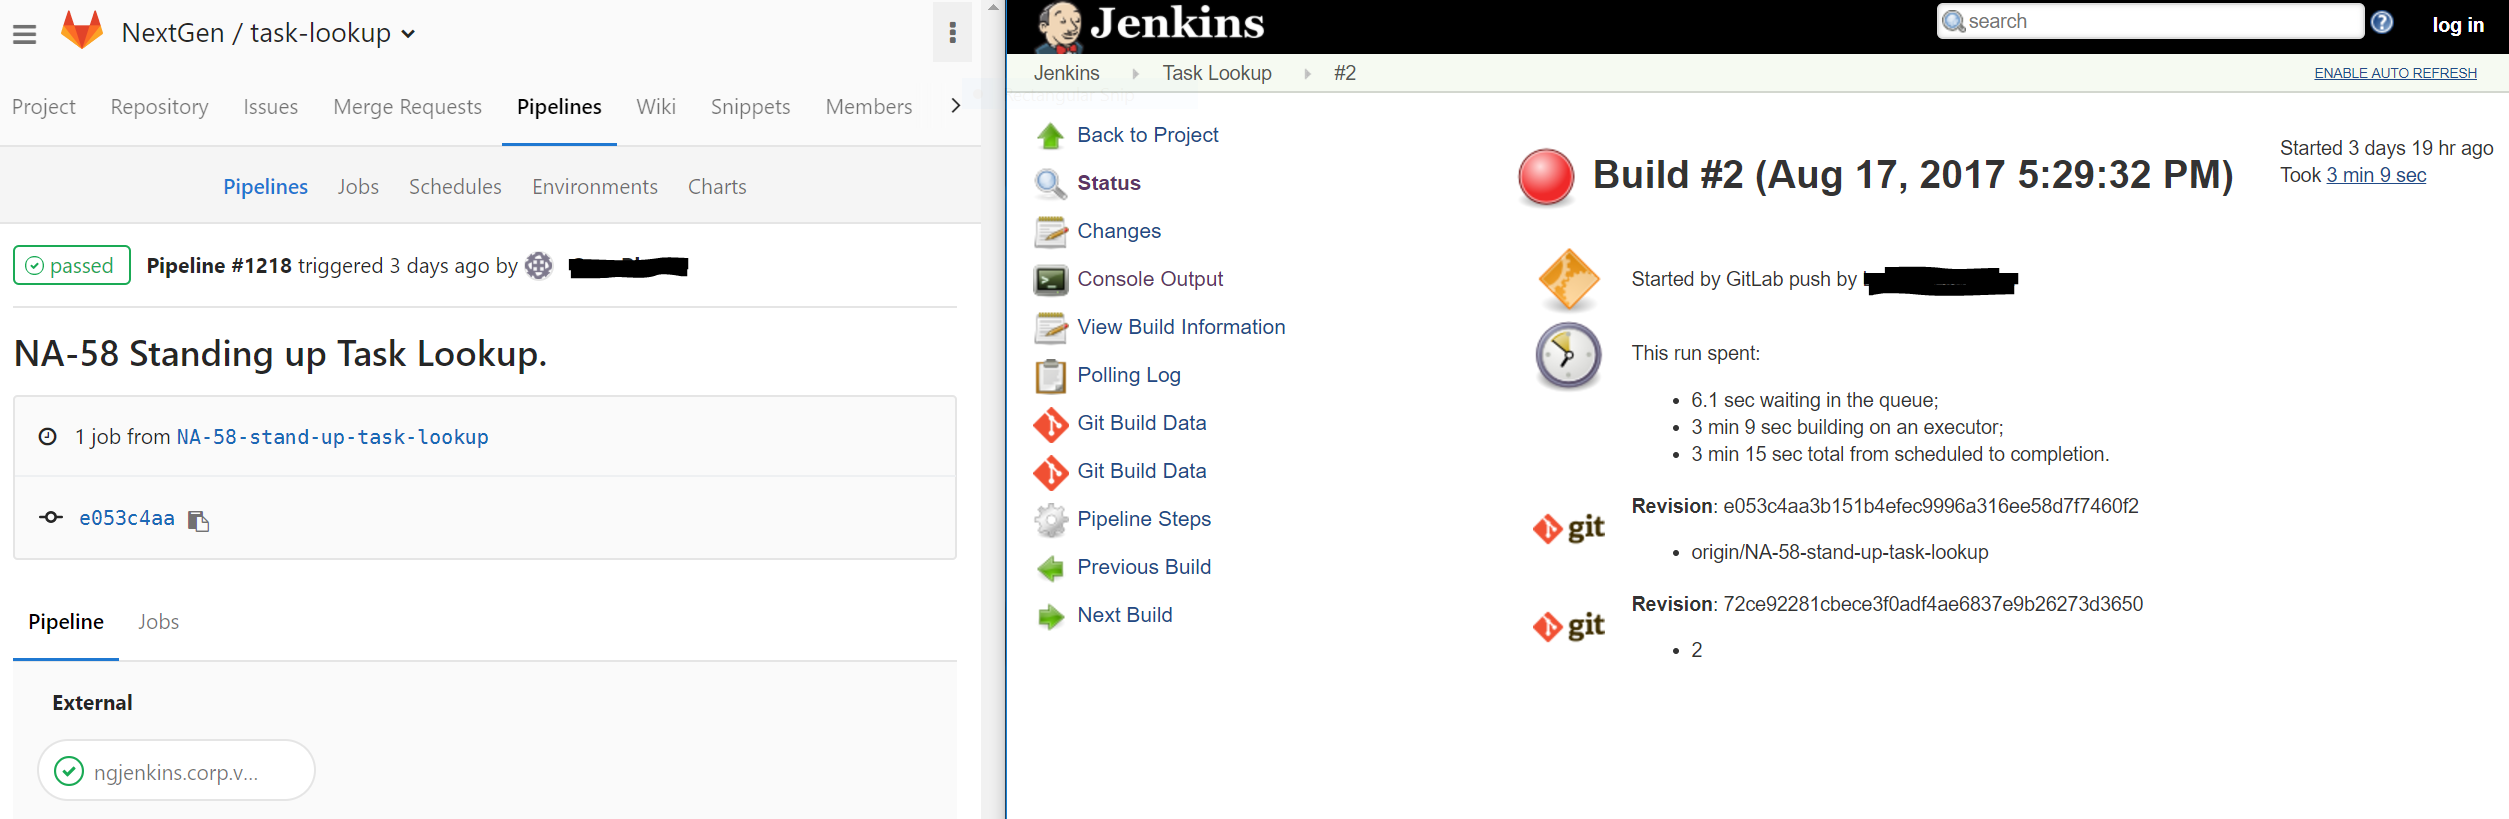 JENKINS-46325] Should we use result or currentResult? - Jenkins JIRA